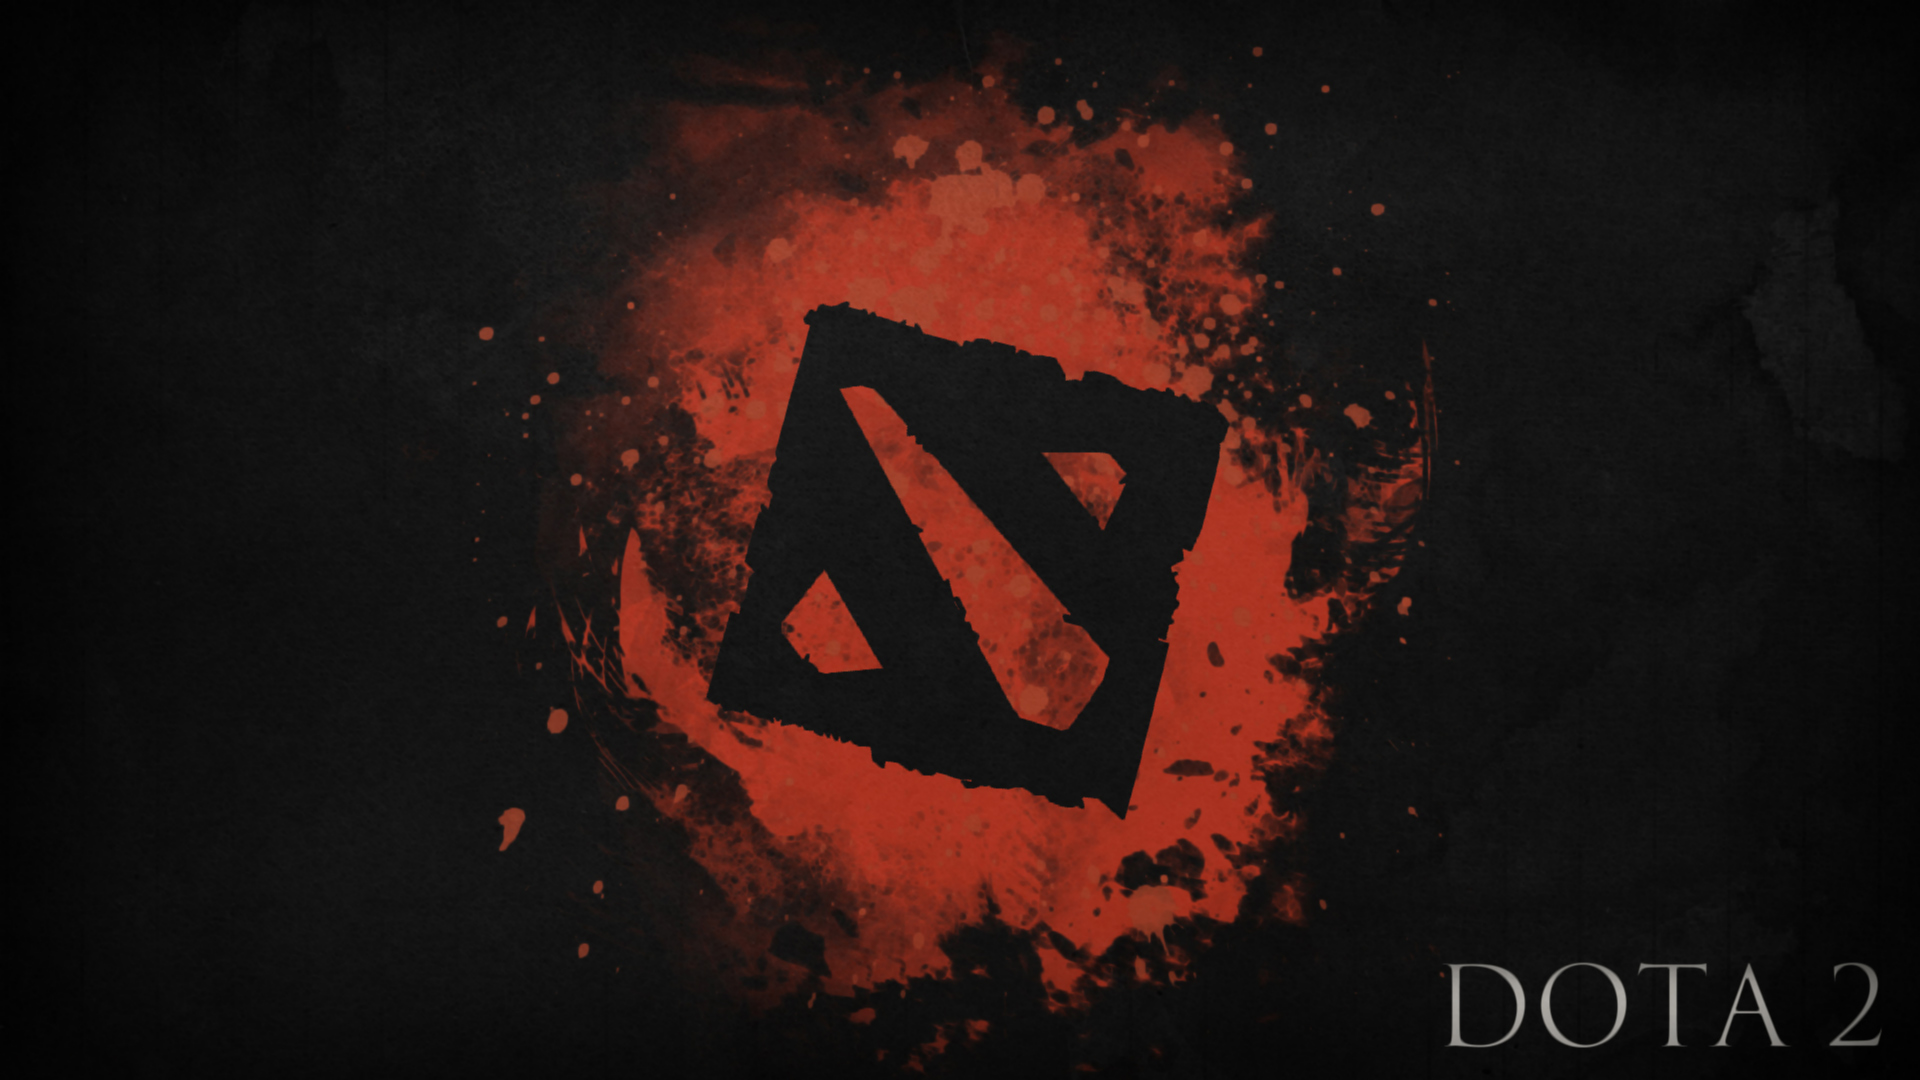 Dota 2 Logo 192... Dota 2 Logo Wallpaper Hd